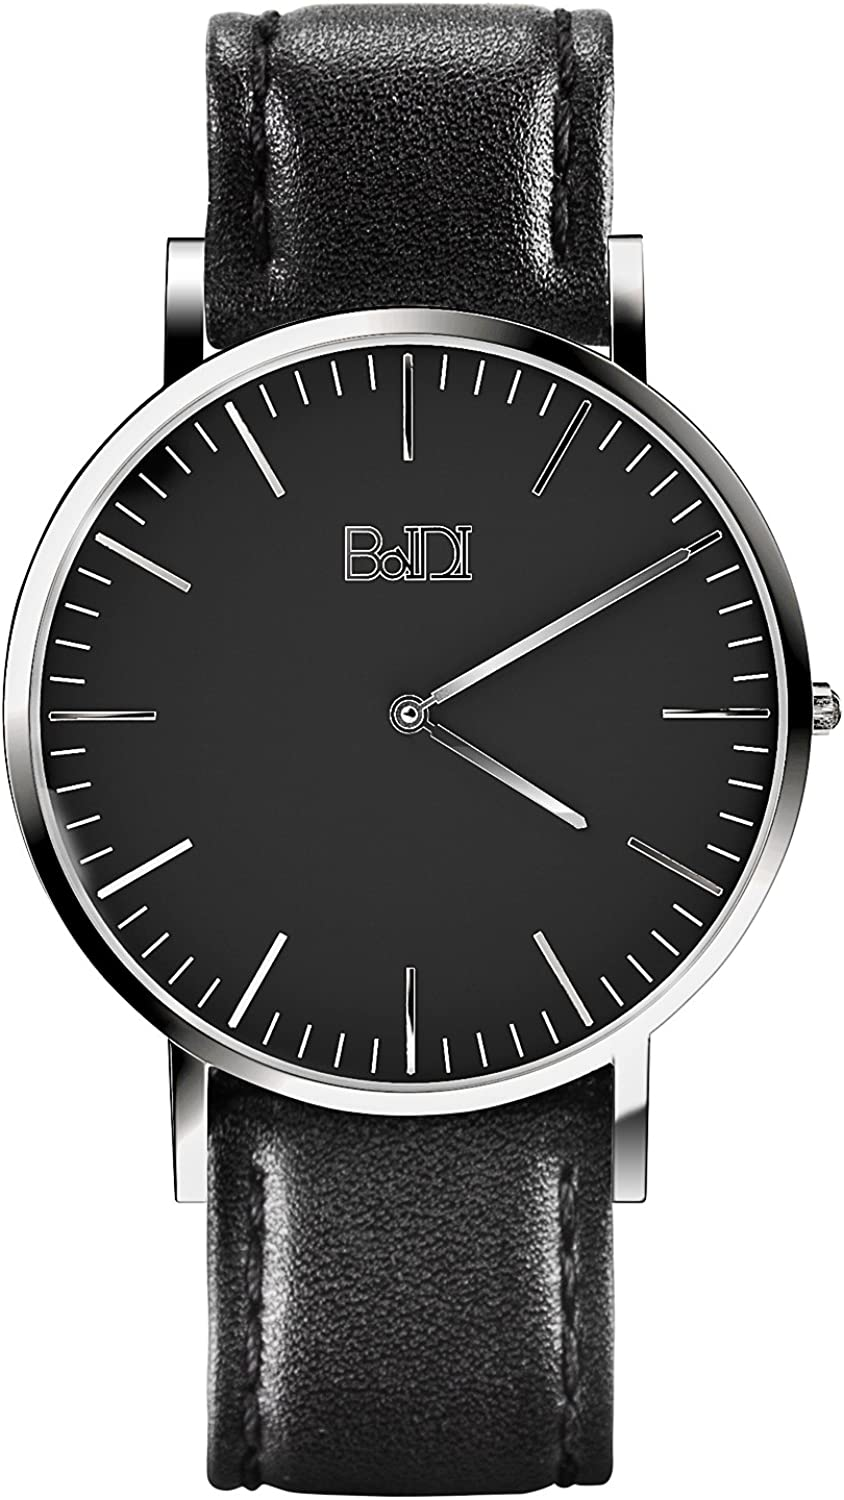 Watches for Men, BaIDI Quartz Wrist Watches Daily Life Waterproof Wristwatch with Leather Wristband